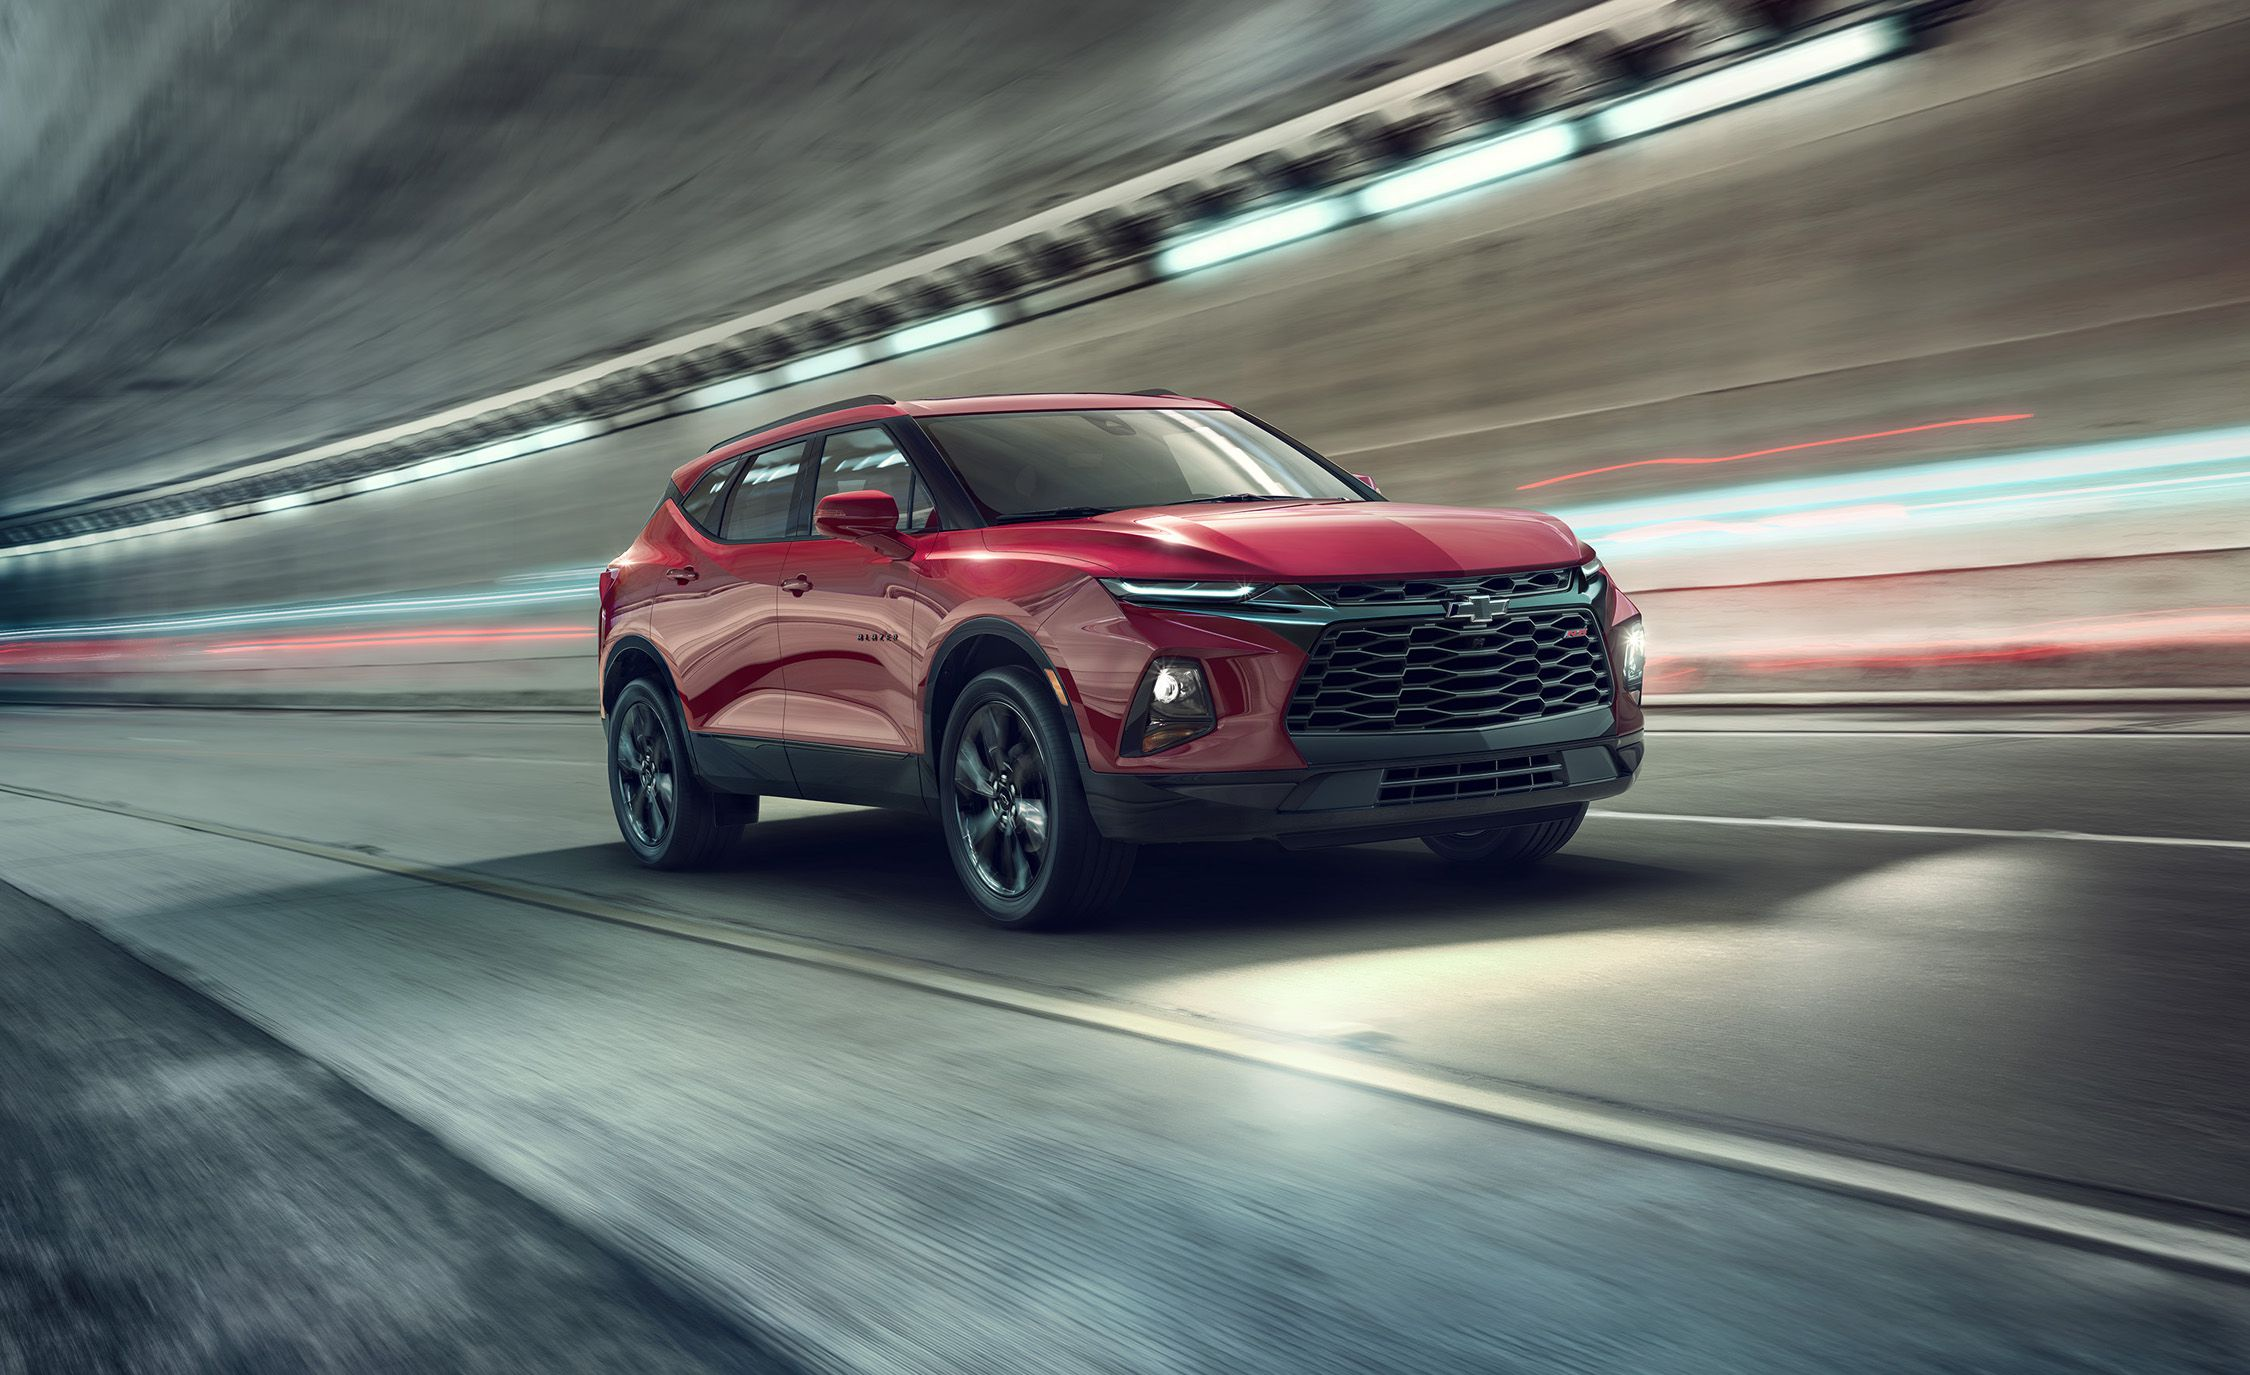 98 All New 2020 Chevy Blazer Price